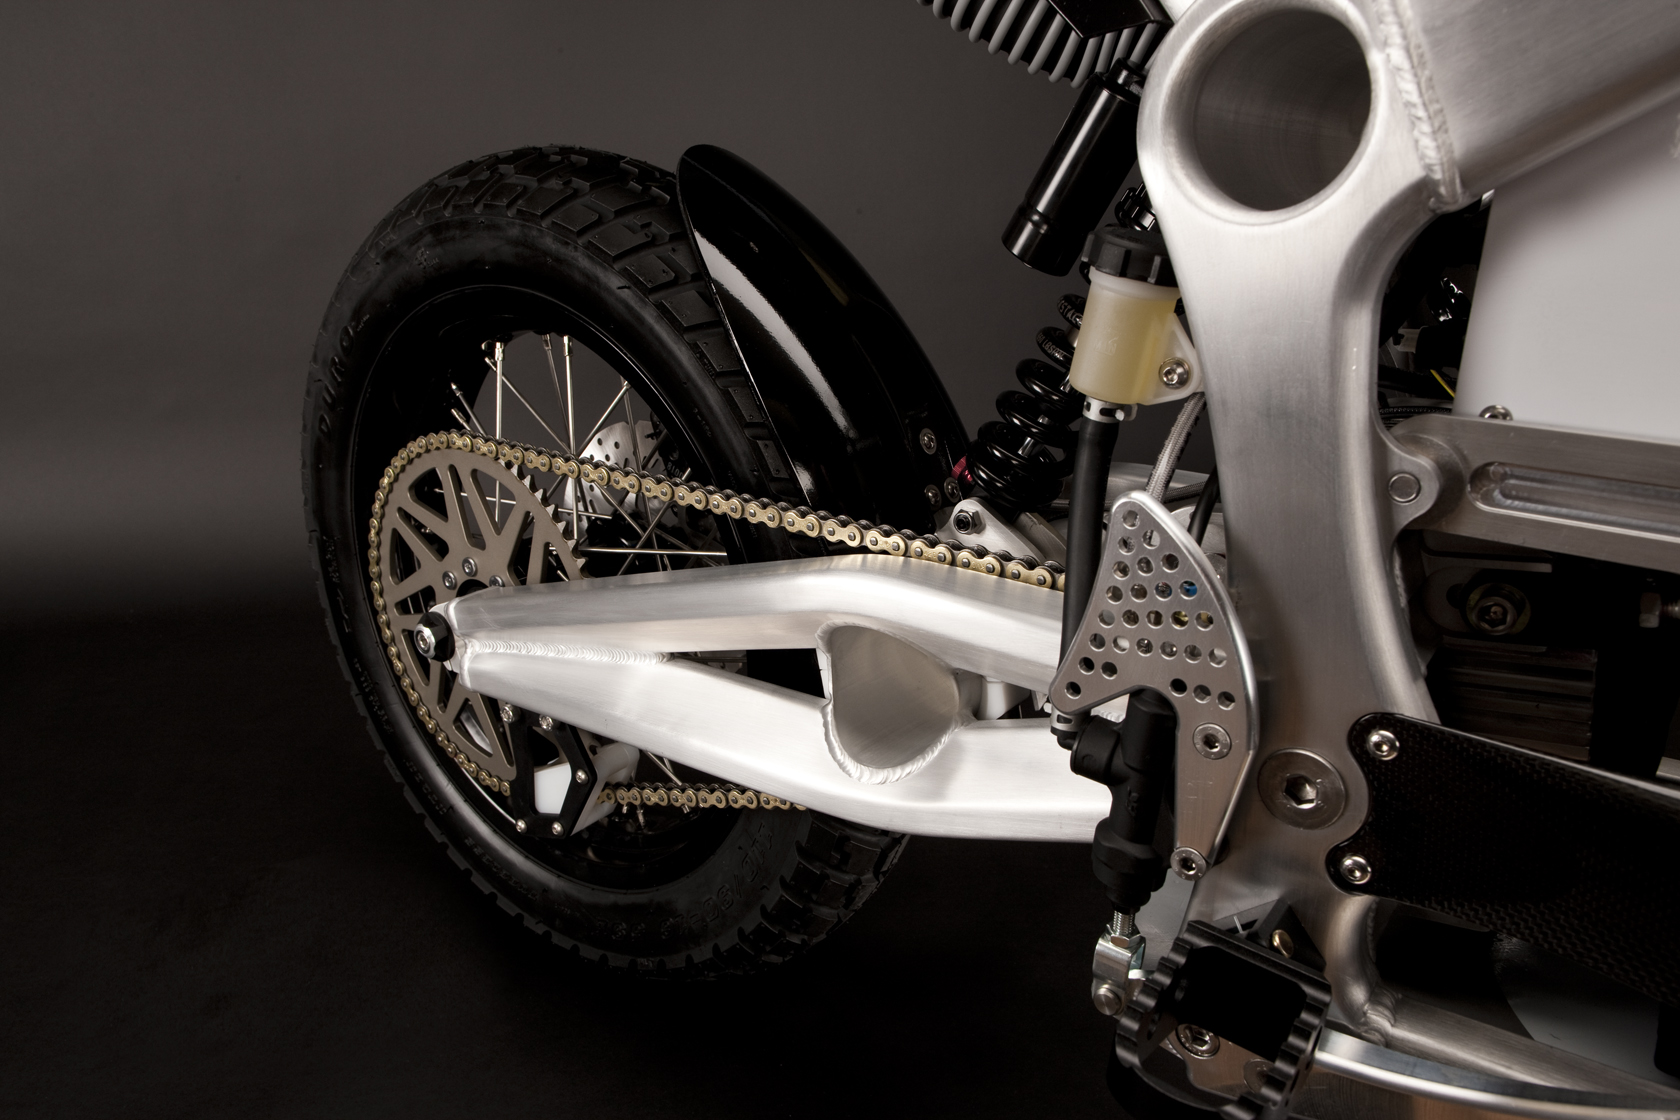 2010 Zero DS Electric Motorcycle: Swingarm